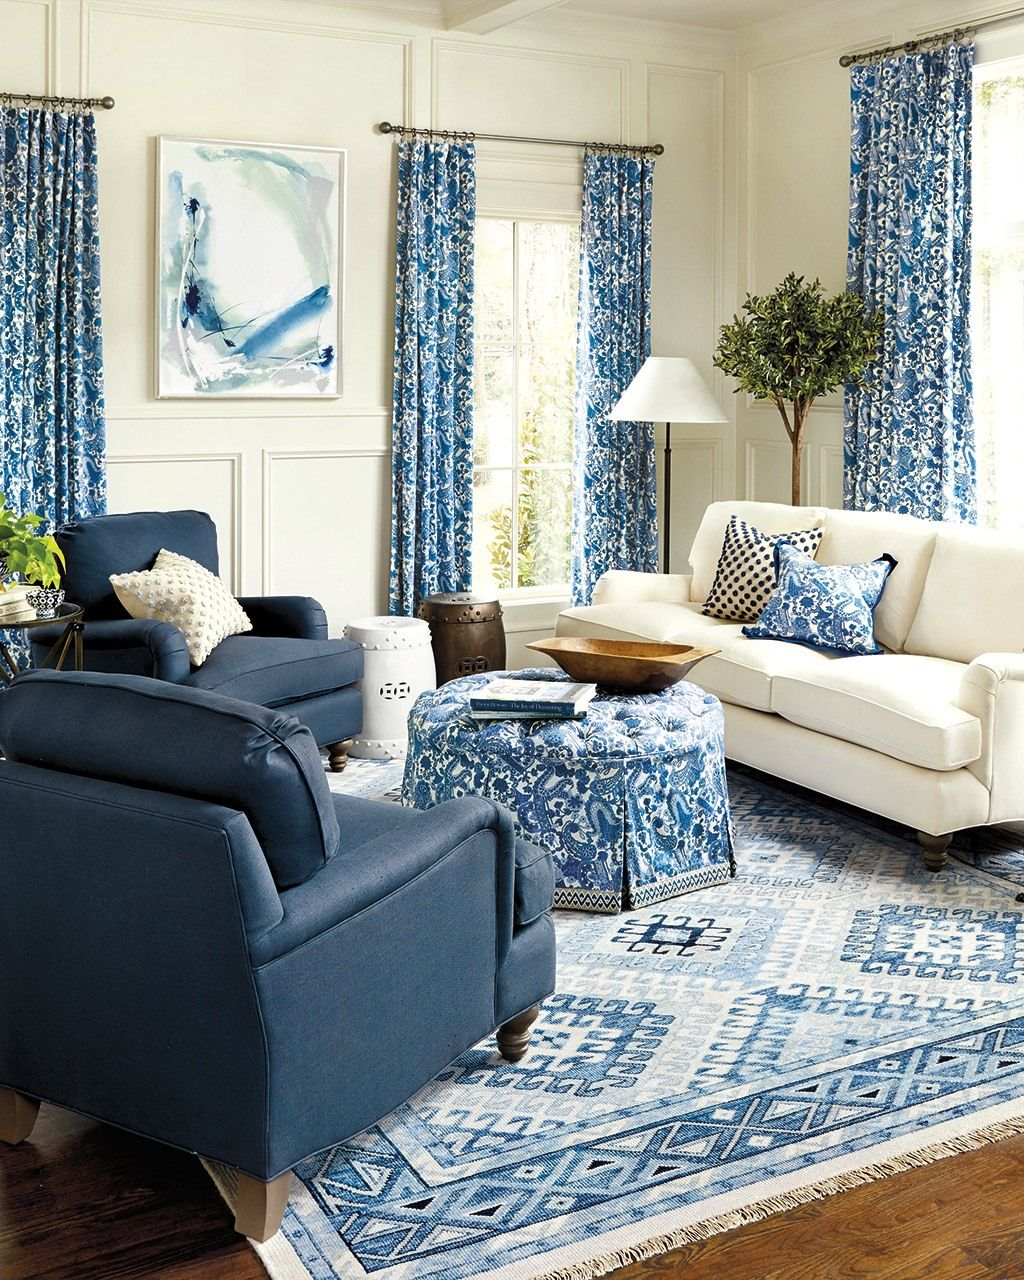 10 Living Rooms Without Coffee Tables How To Decorate Blue Living Room Sets Living Room Without Coffee Table Blue Living Room